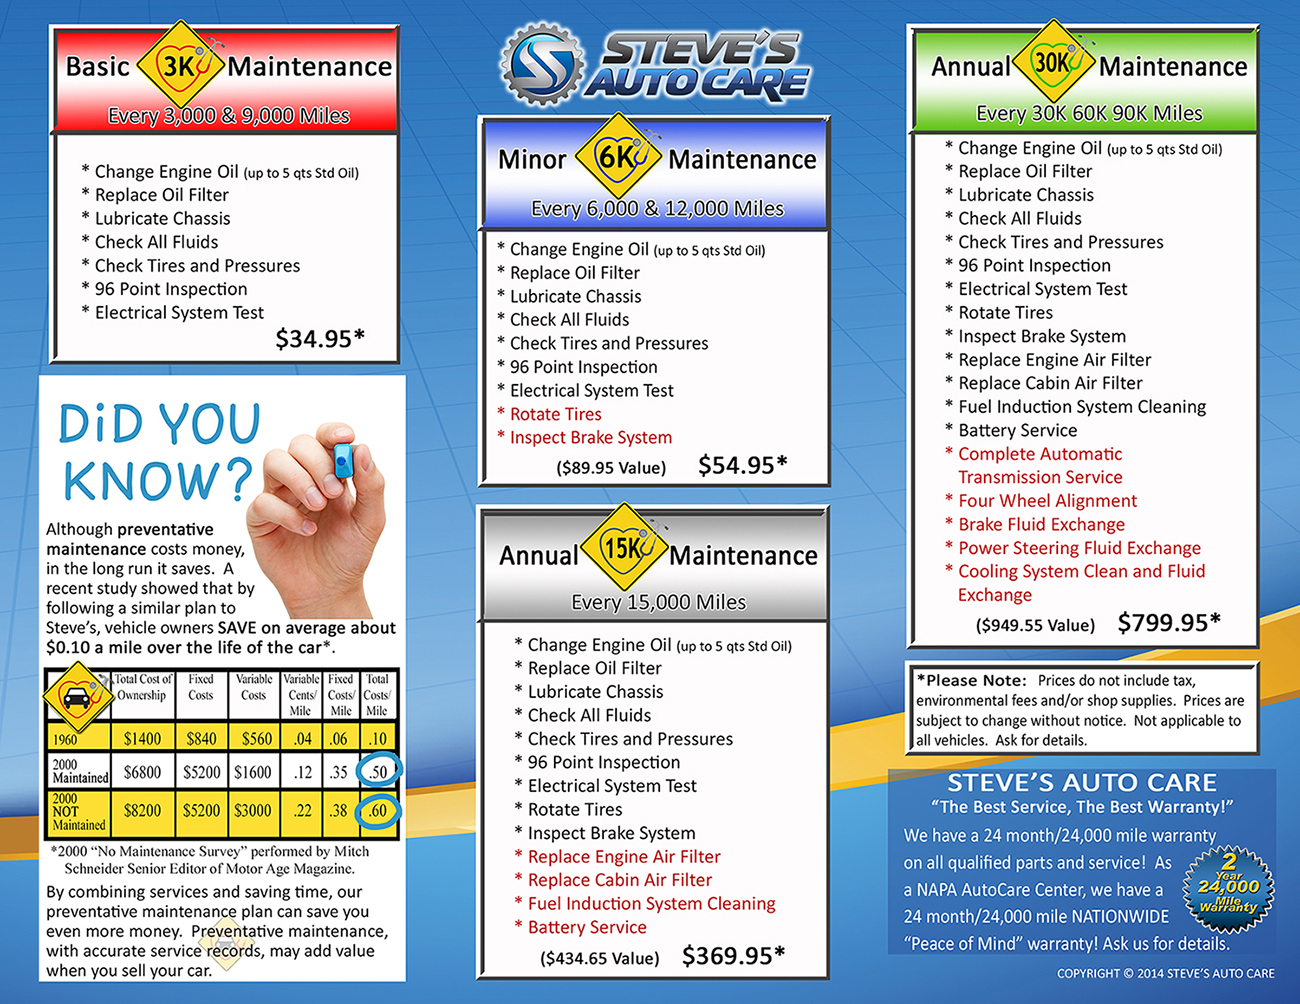 vehicle maintenance service savings warsaw, in